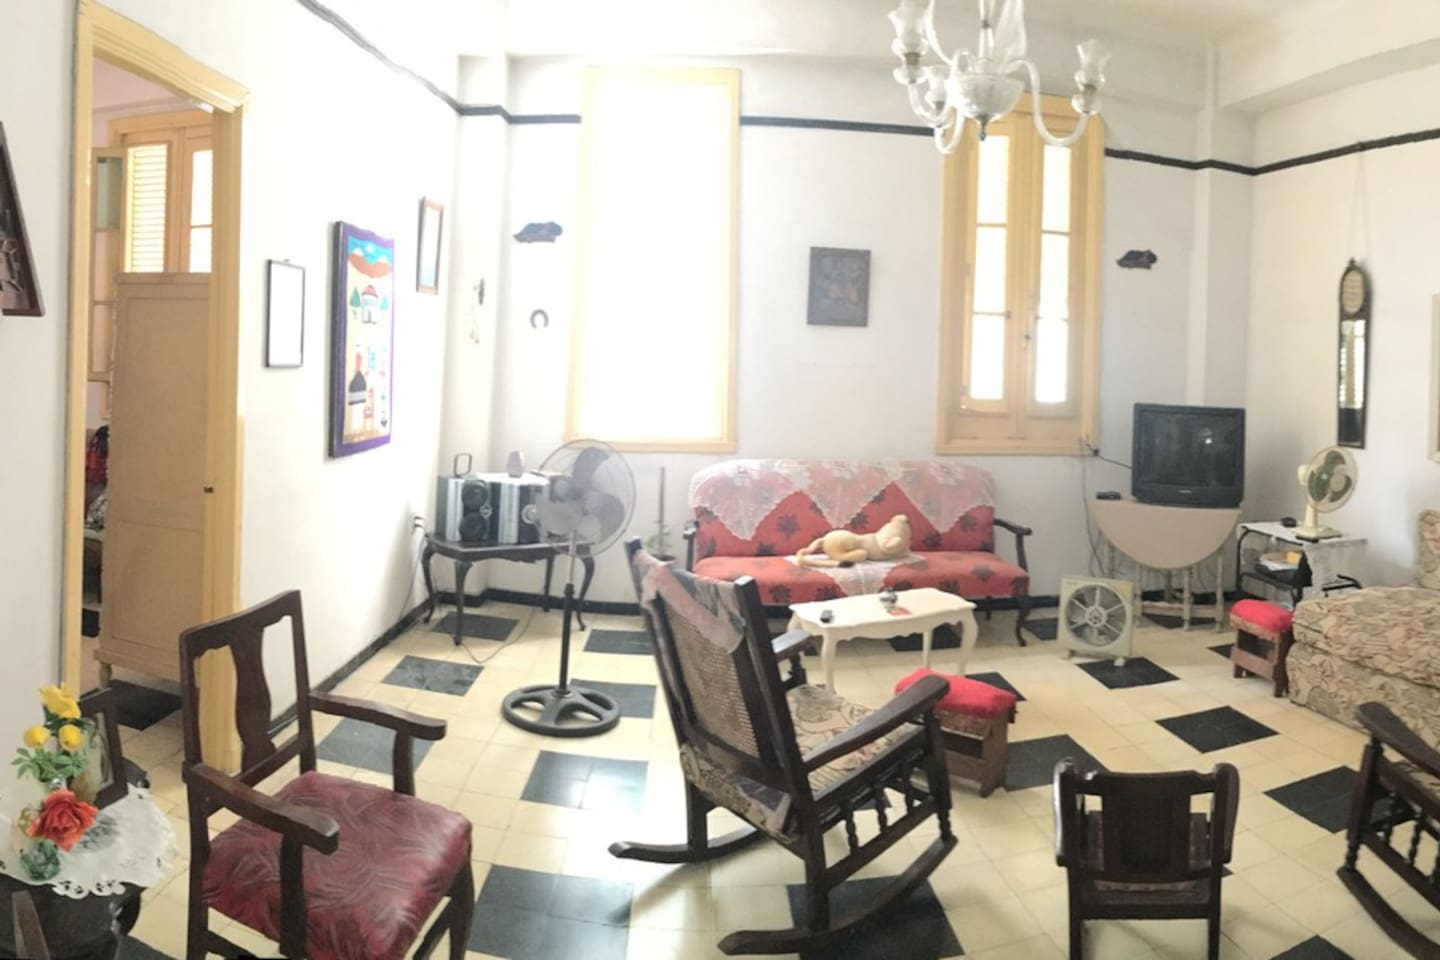 This is the living room of the house. With so much light There are music player, televition, desk, etc...